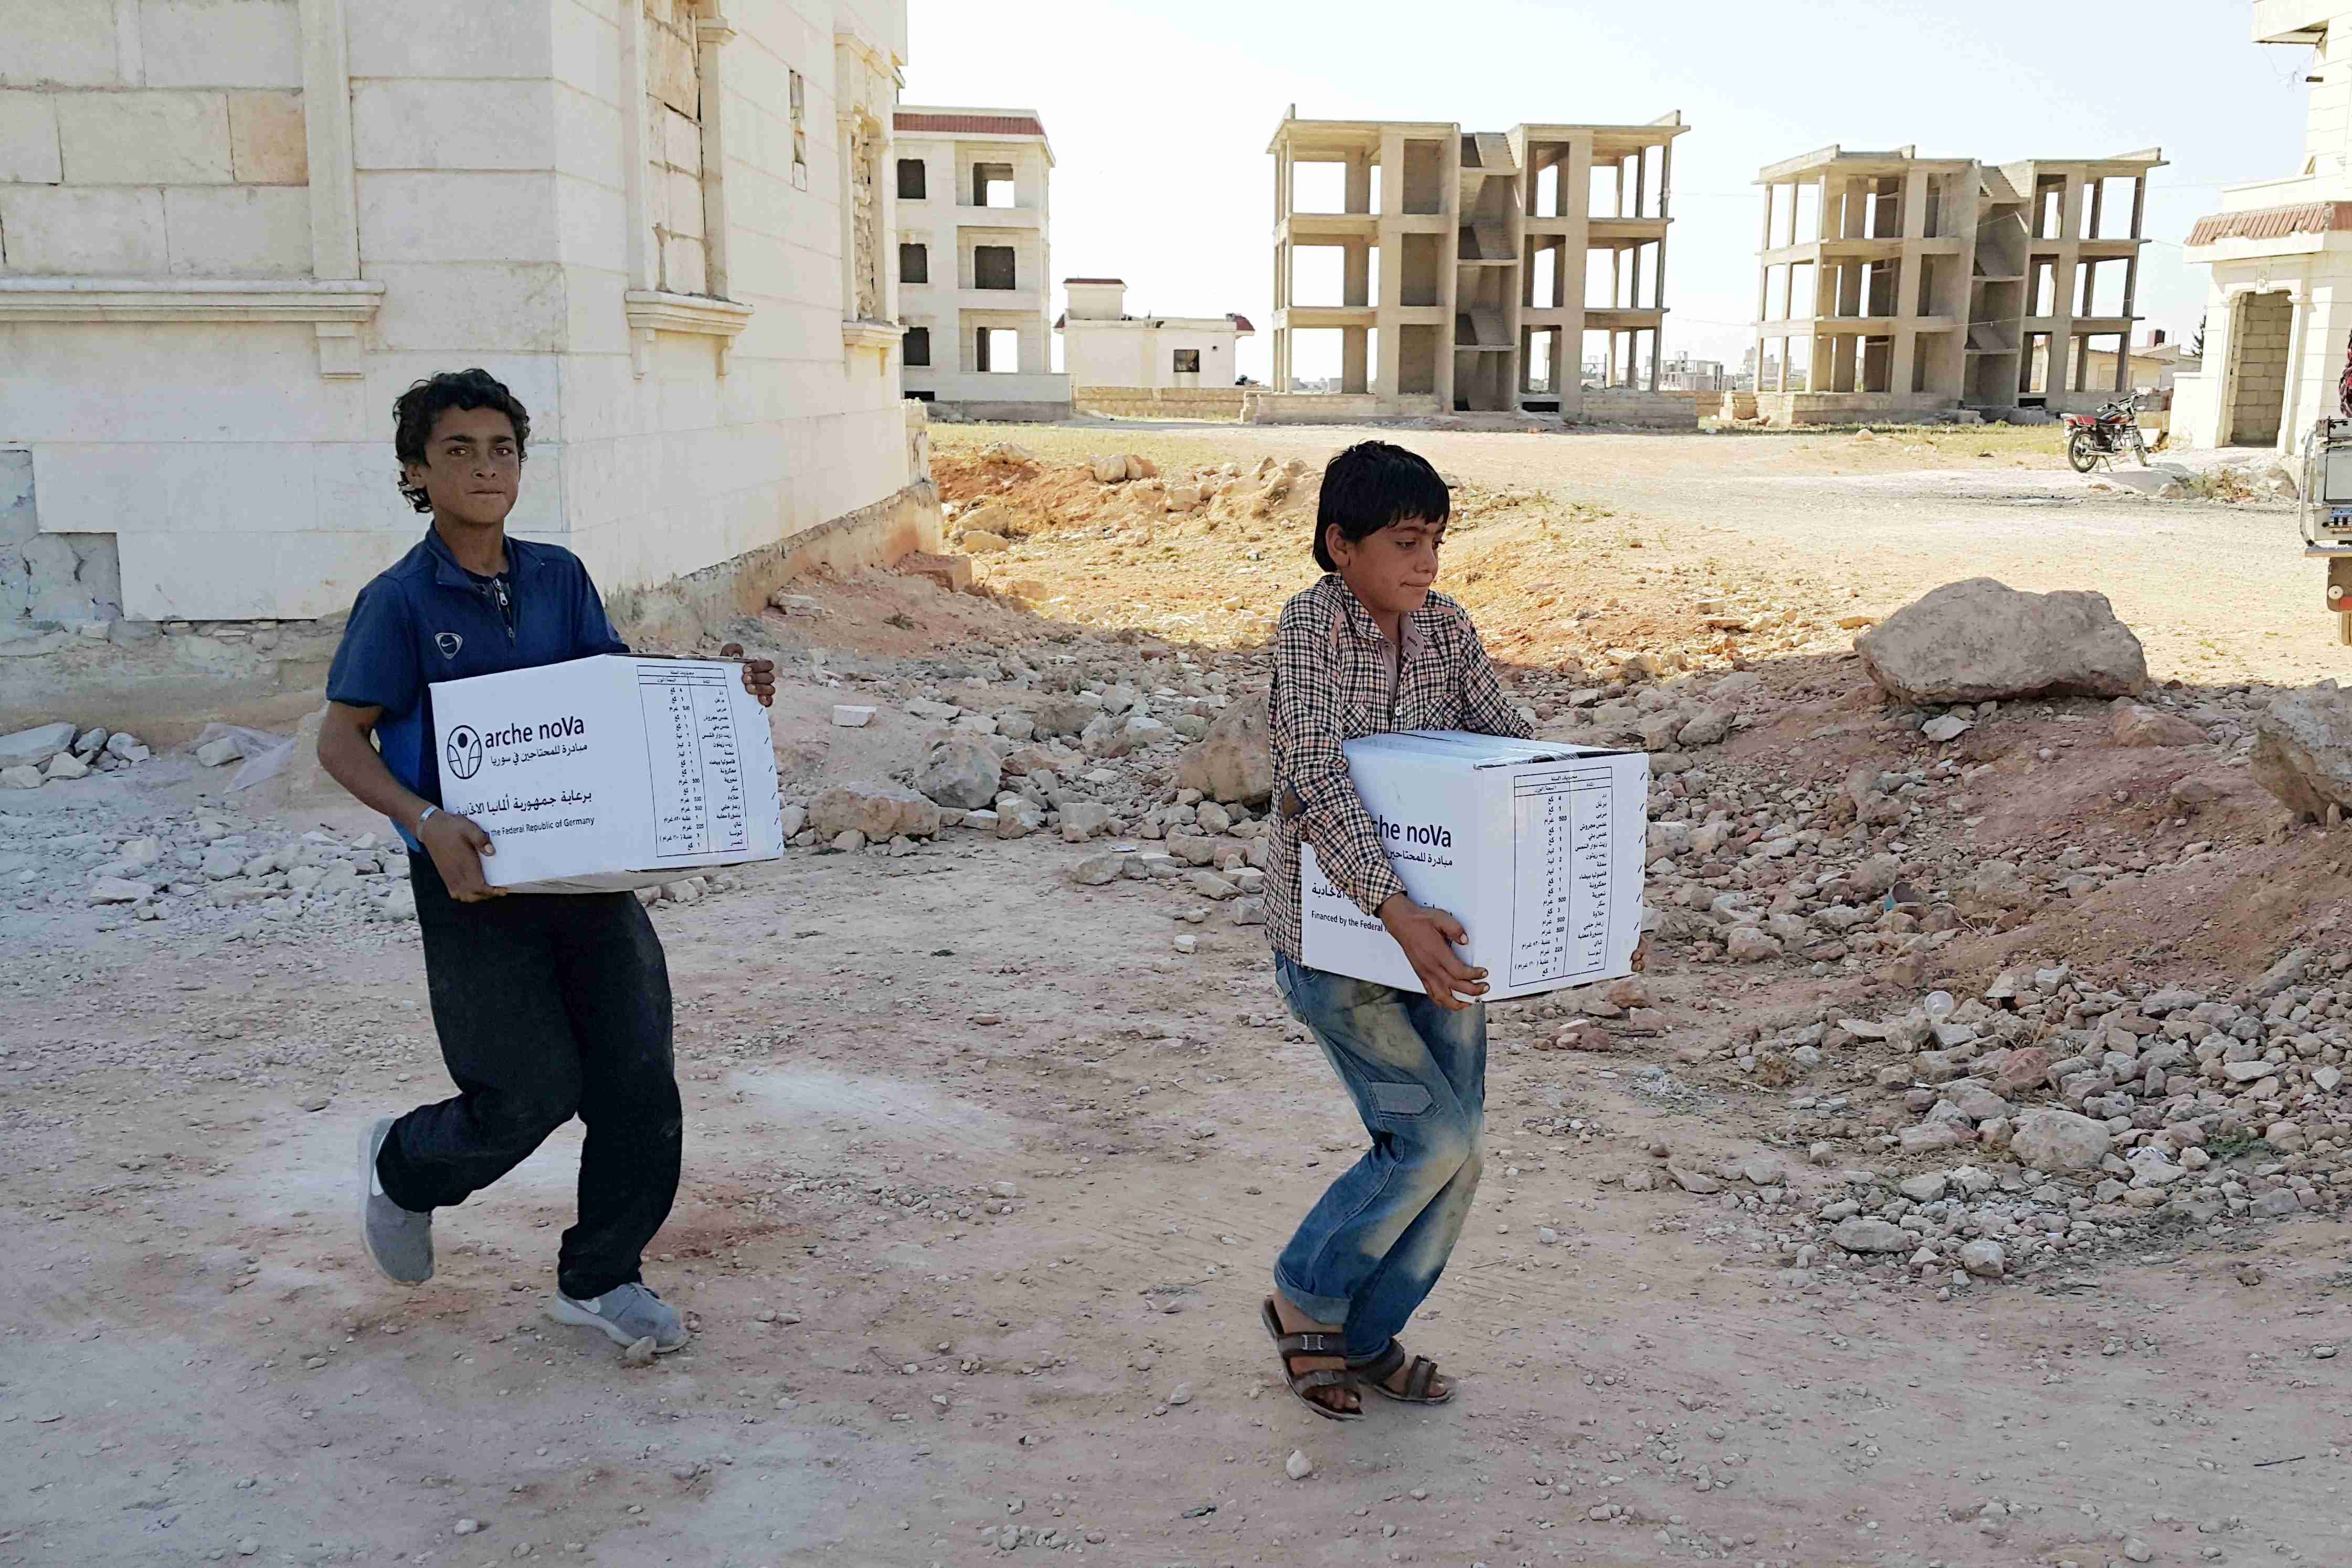 Two boys carrying parcels in front of unfinished buildings